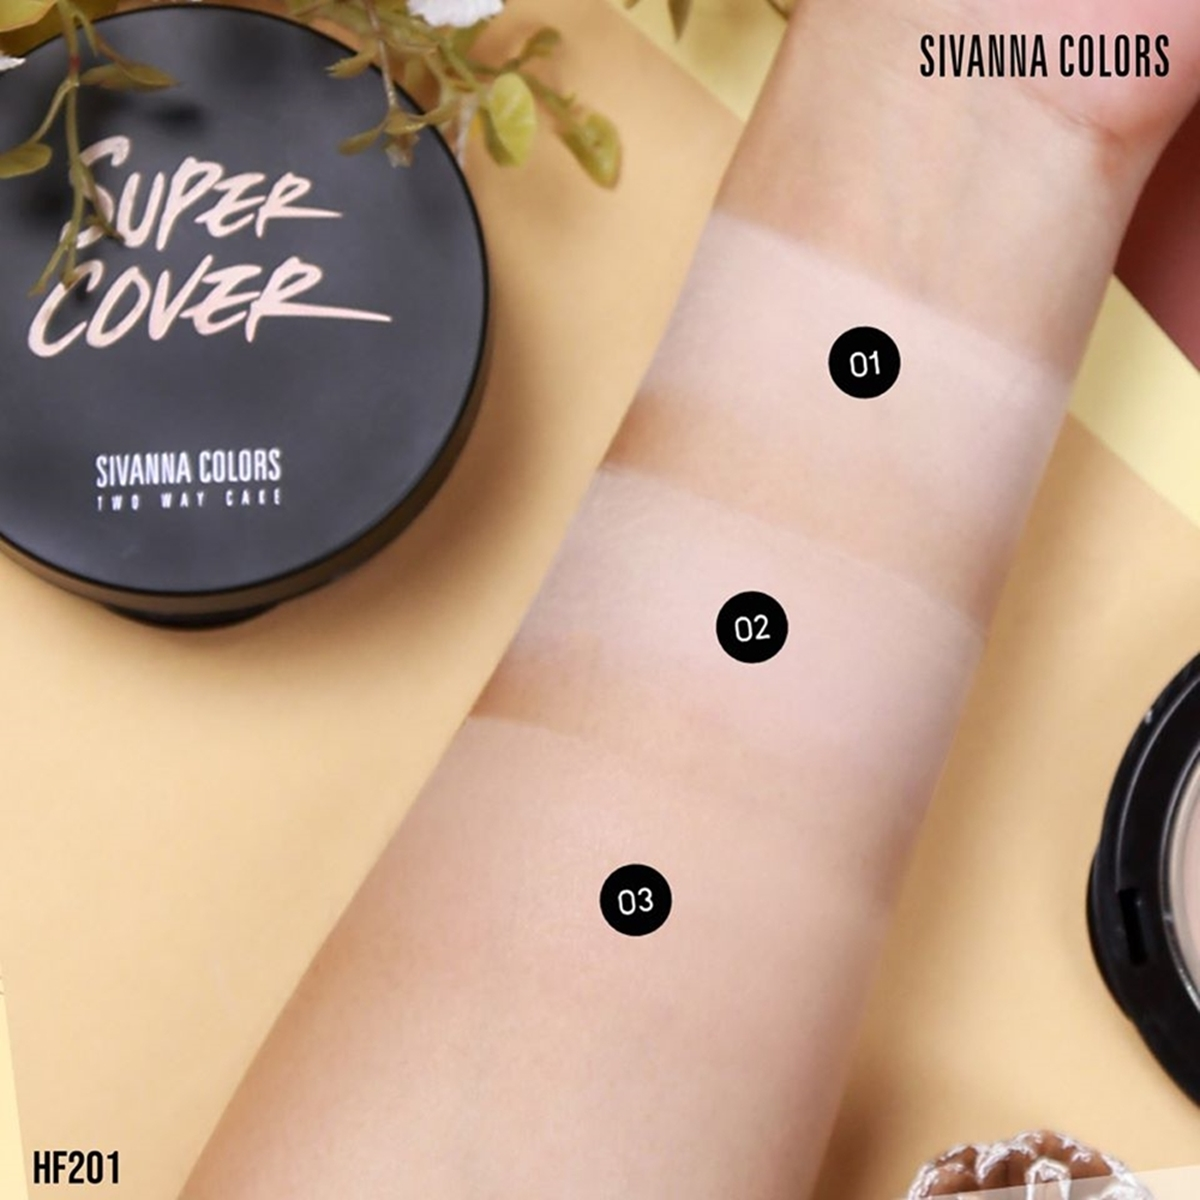 SIVANNA COLORS, Phấn Nền Sivanna Colors Super Cover Two Way Cake 10g .#01  Light Beige | Watsons Vietnam